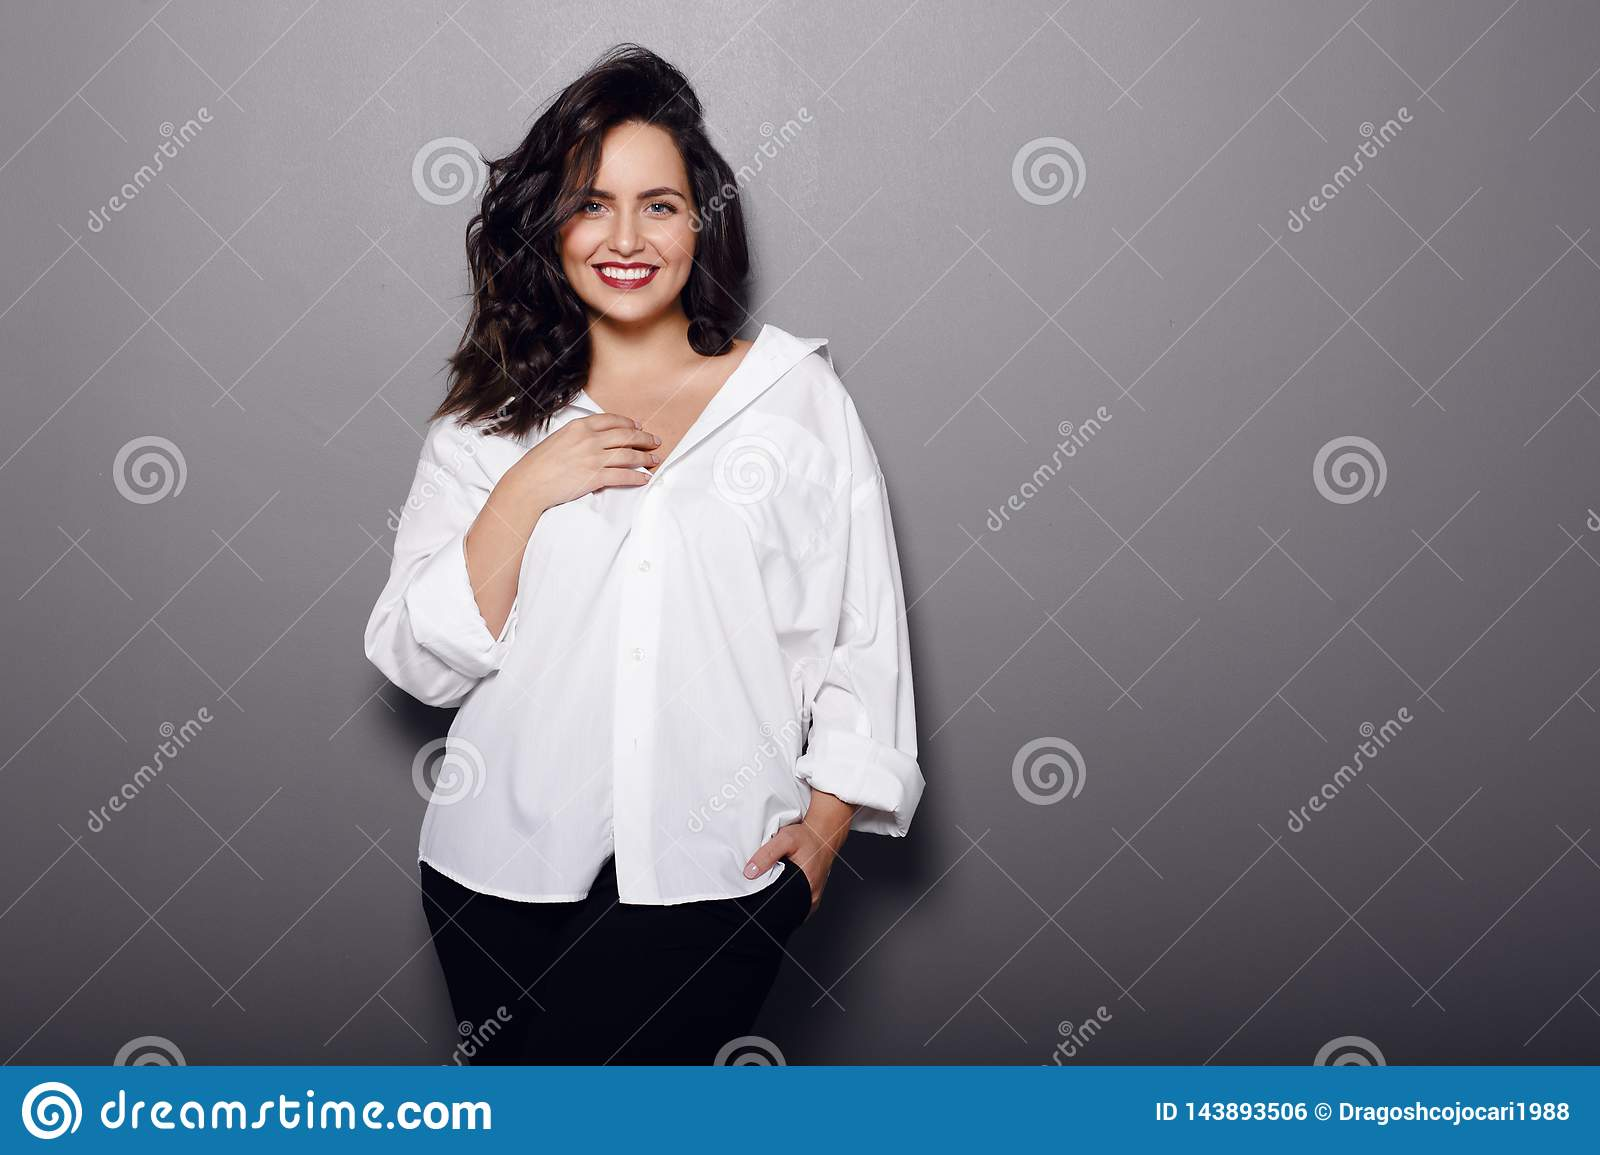 Beauty portrait of cheerful brunette woman, wear in white shirt and black pants, isolated on a grey background